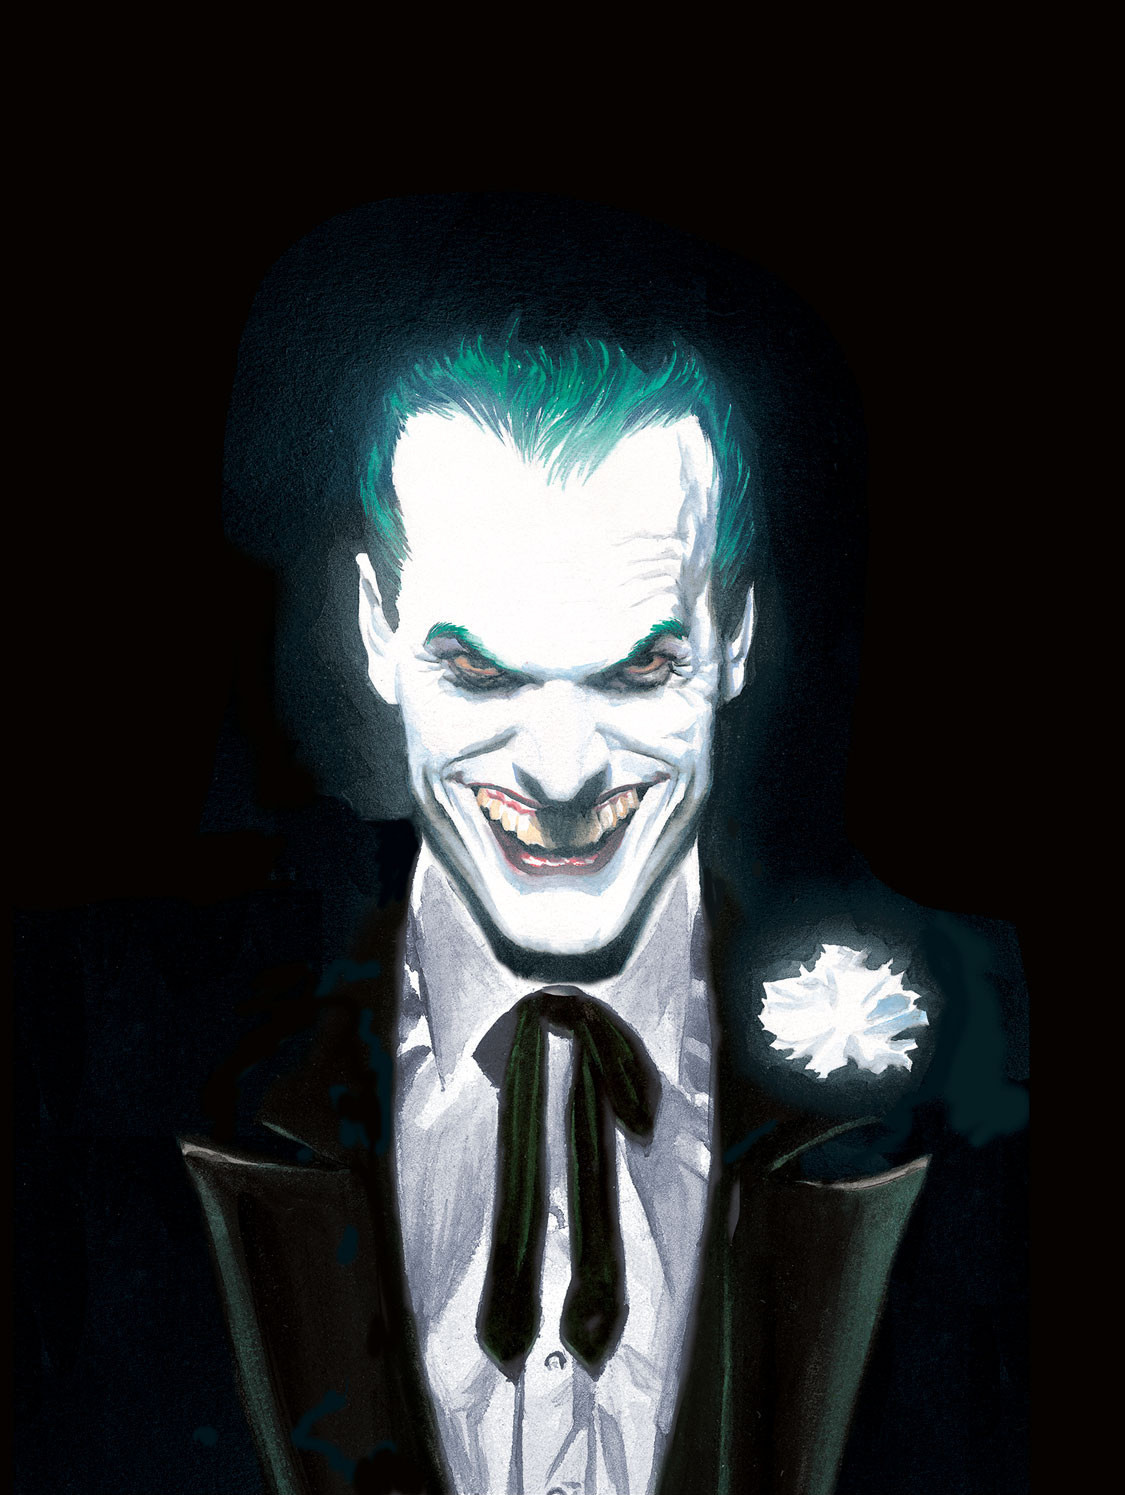 Joker Character Beautiful the Joker Batman Wiki   Top Joker Character Backgrounds   WallpaperAccess 1125x1495